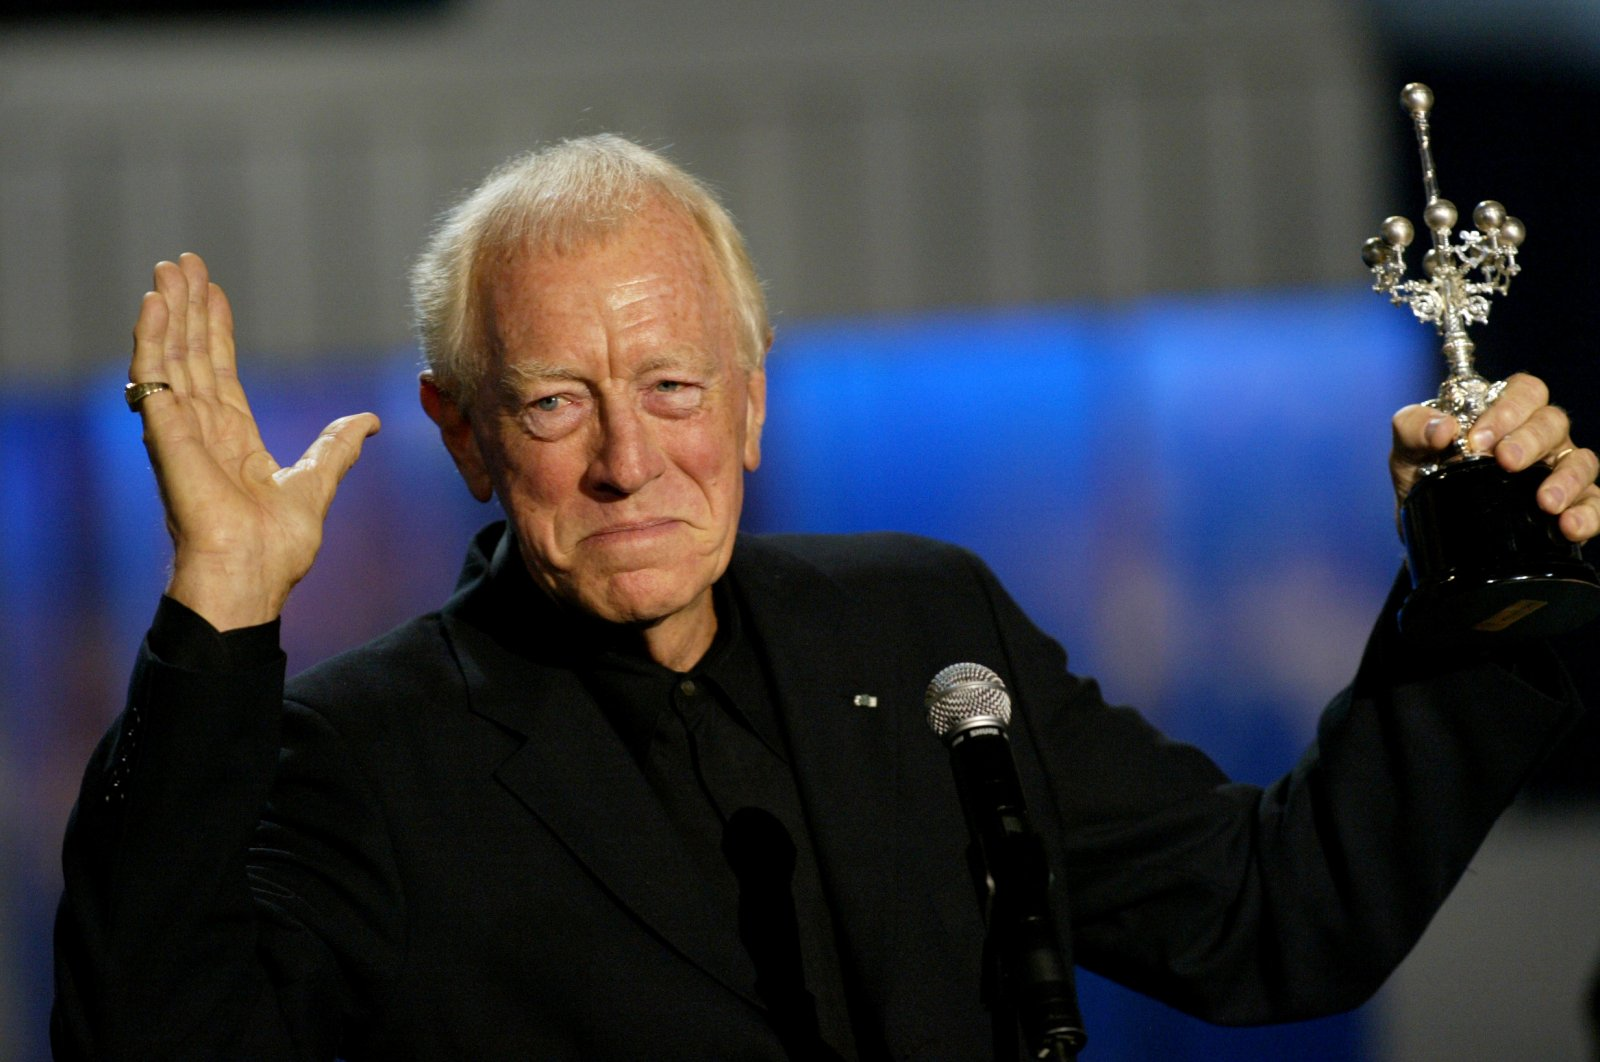 Swedish actor Max von Sydow holds his Donostia Award which he was given in recognition for his lifetime career during the San Sebastian's International Film Festival in Spain, Sept. 24, 2006. (REUTERS Photo)